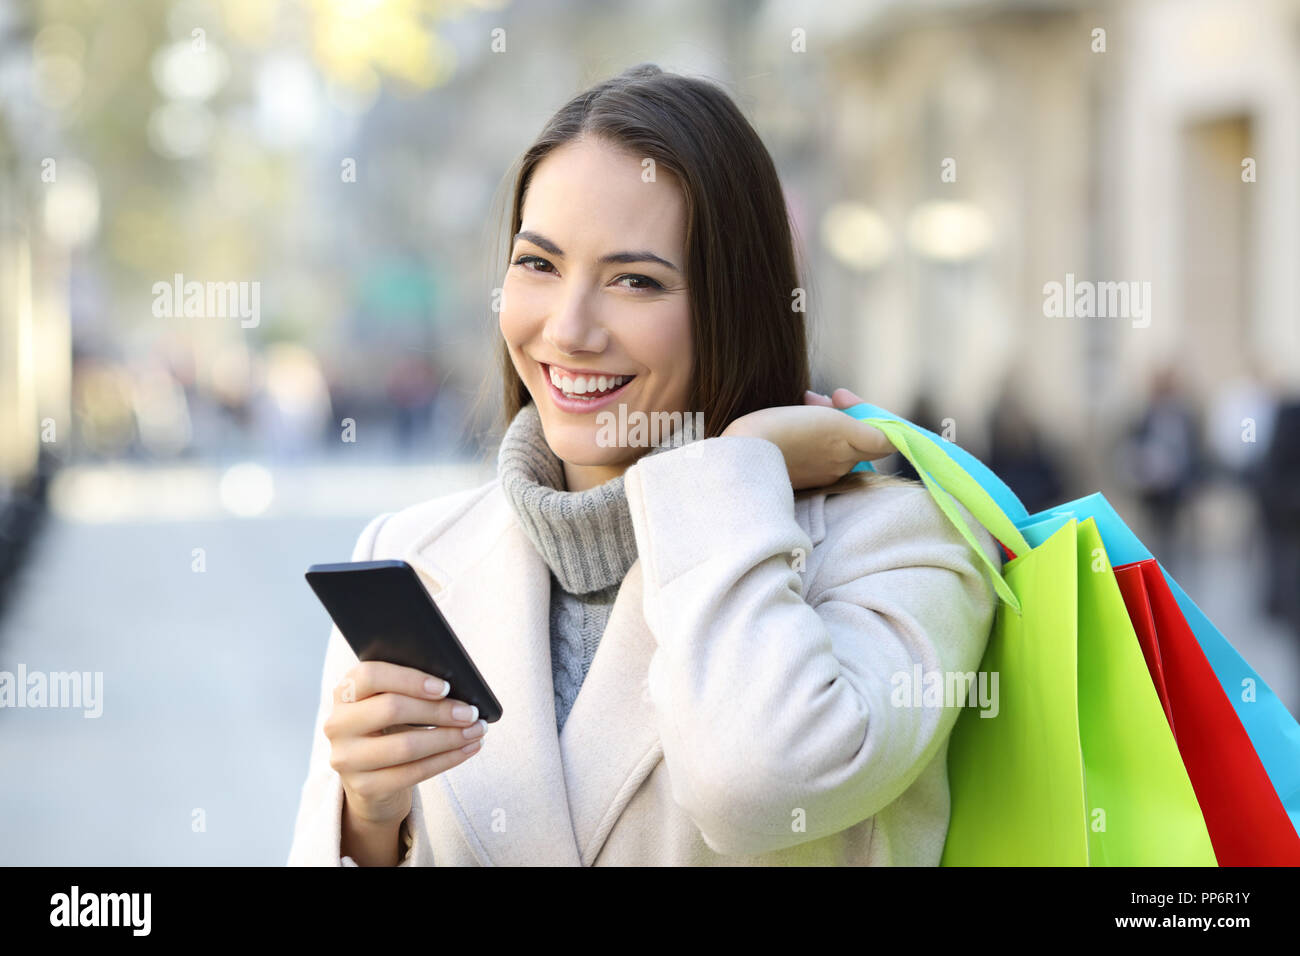 Be a Smart Phone Shopper Be a Smart Phone Shopper new images